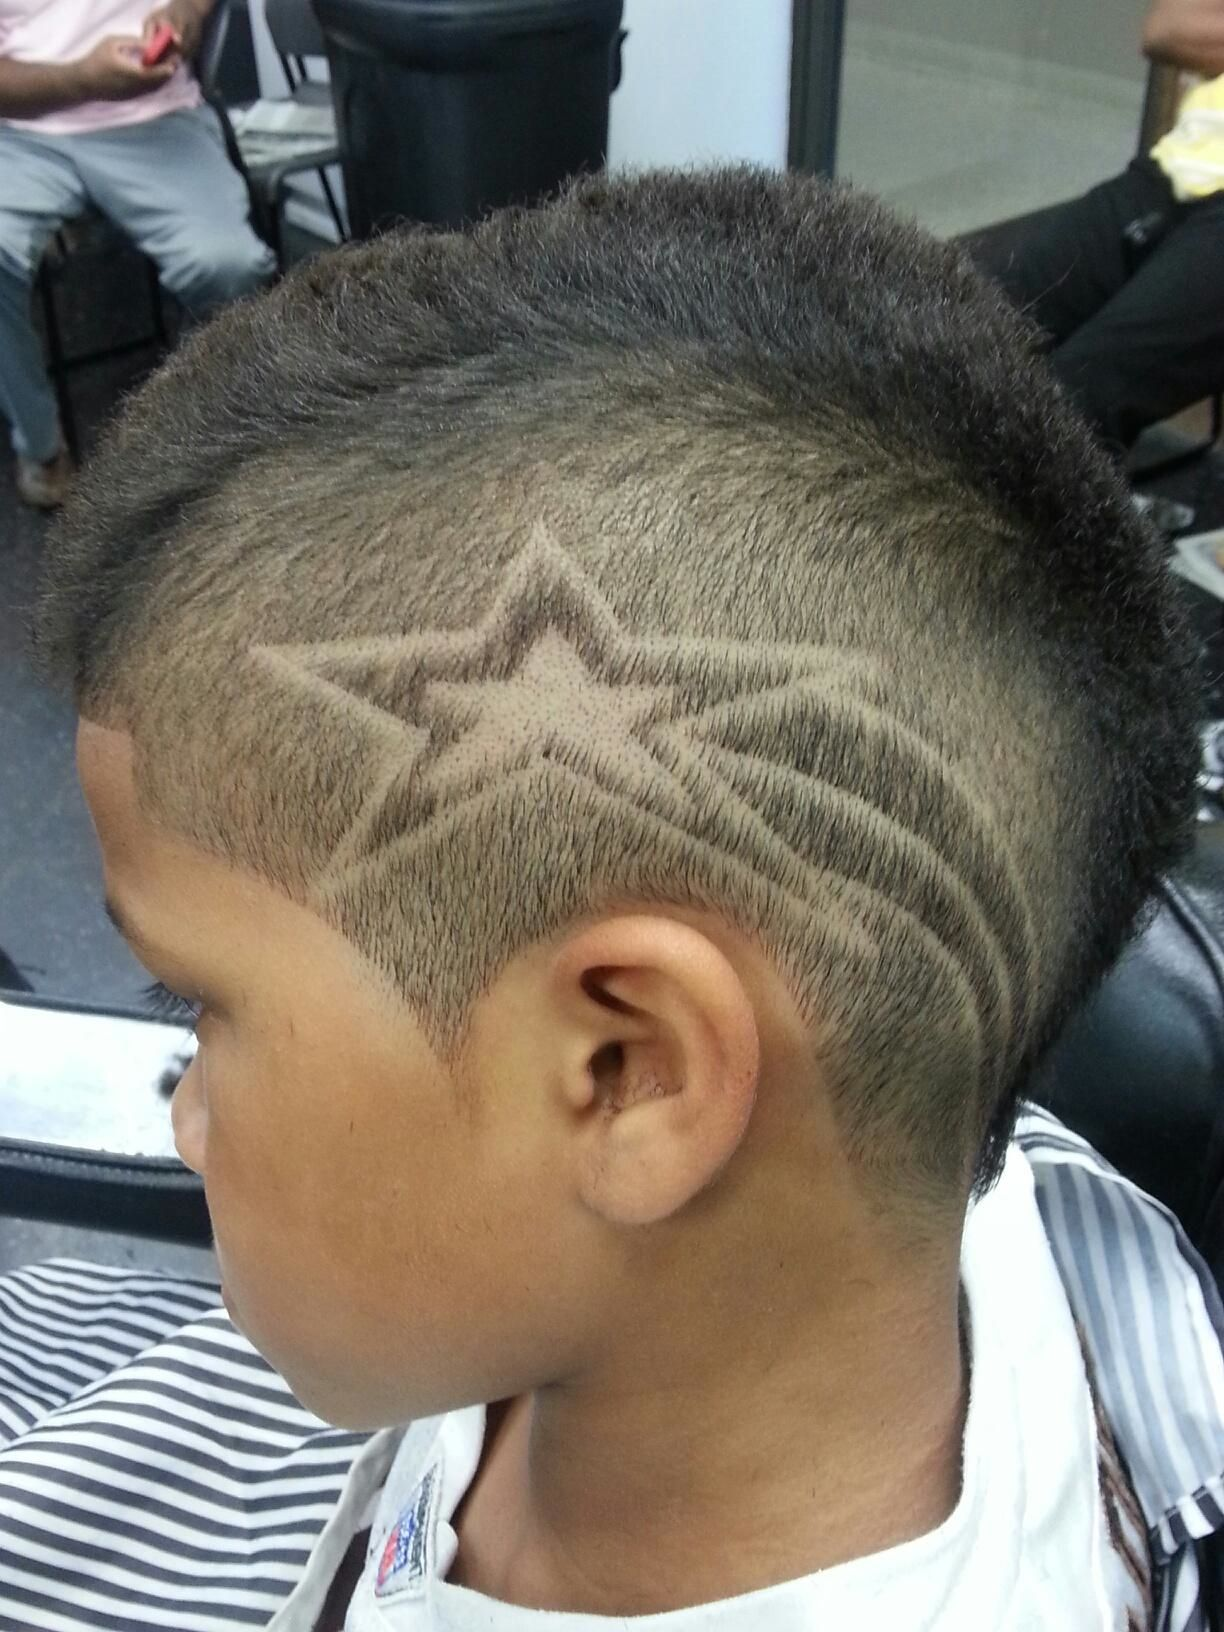 star design hair cuts | Loren The Barber | Cosmetologist ...